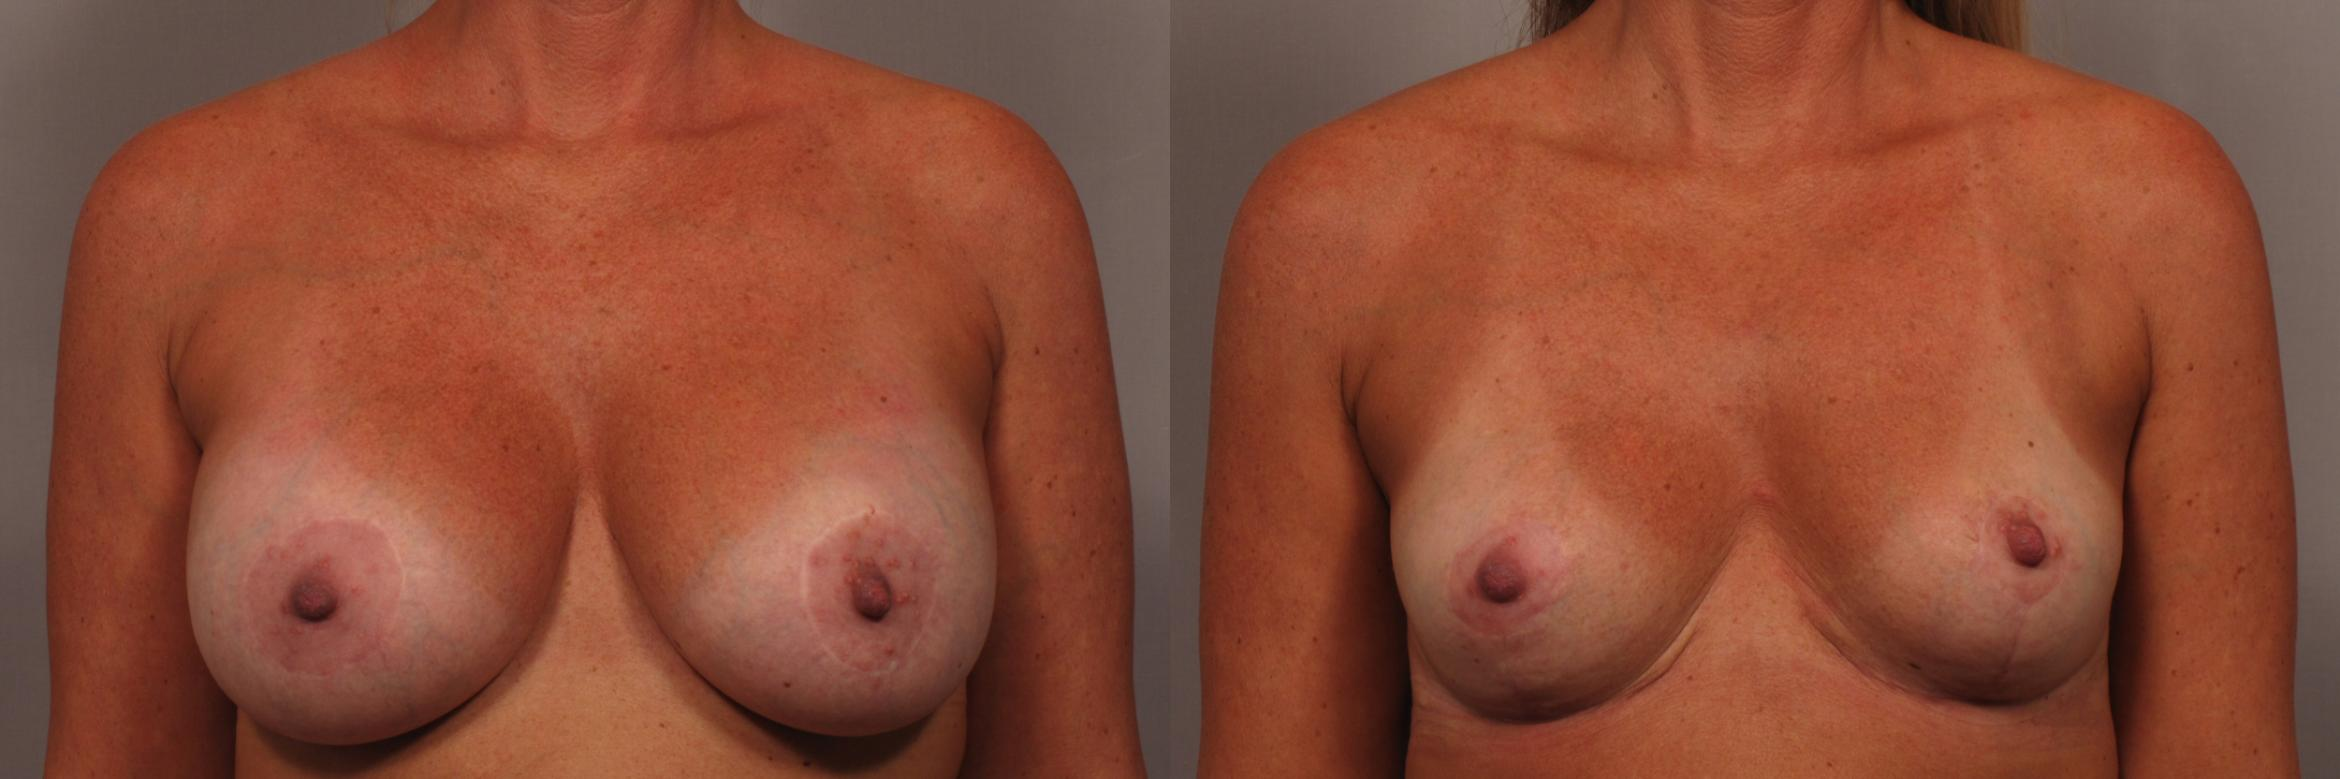 Breast Implant Removal Case 361 Before & After View #1 | Naples, FL | Kent V. Hasen, M.D.